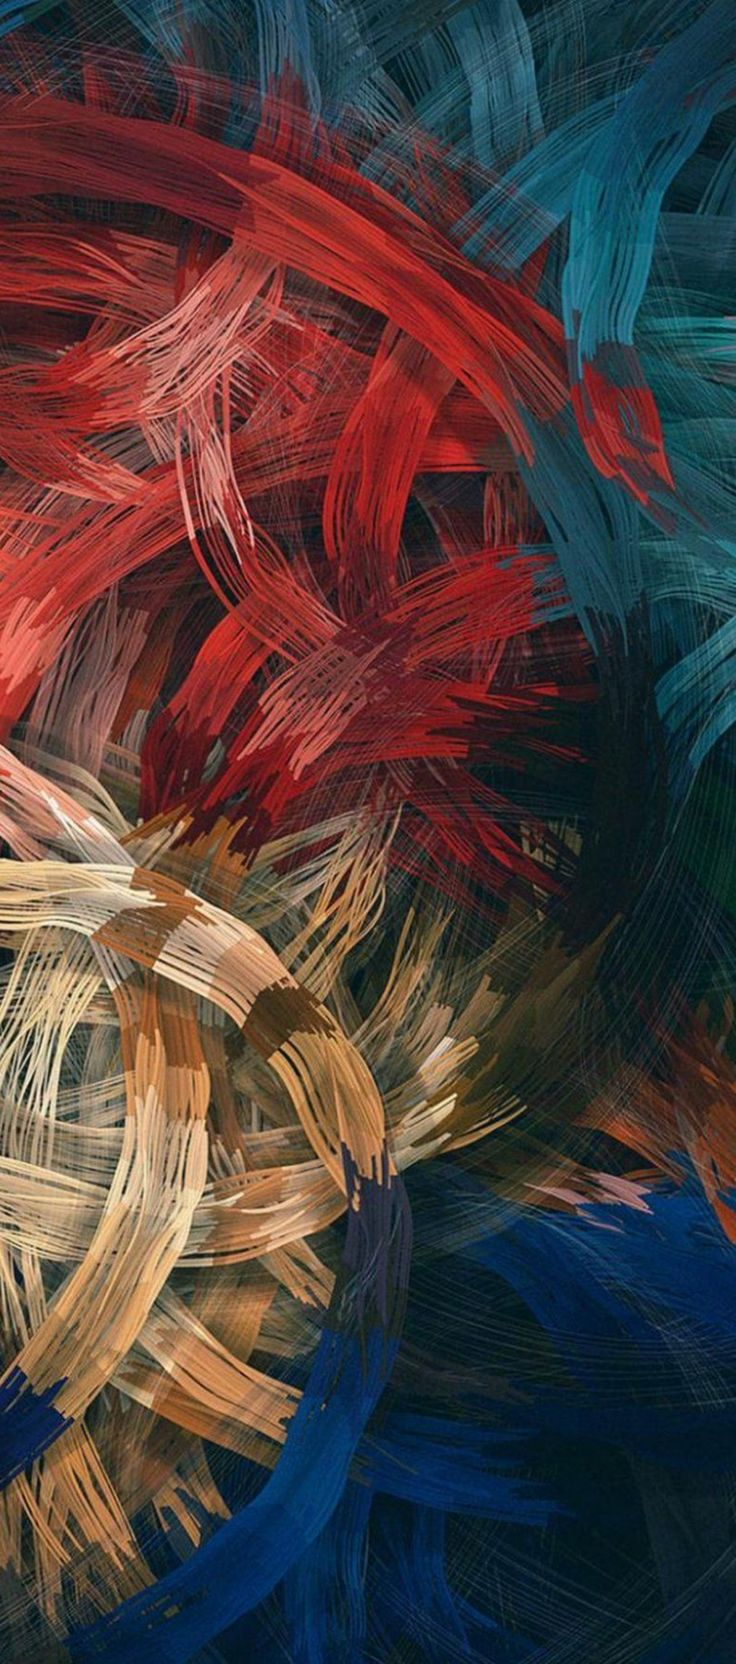 Brush strokes, red, orange, blue, wallpaper, clean, galaxy, colour, abstract, digital art, s8, walls, Samsung, galaxy s8, note